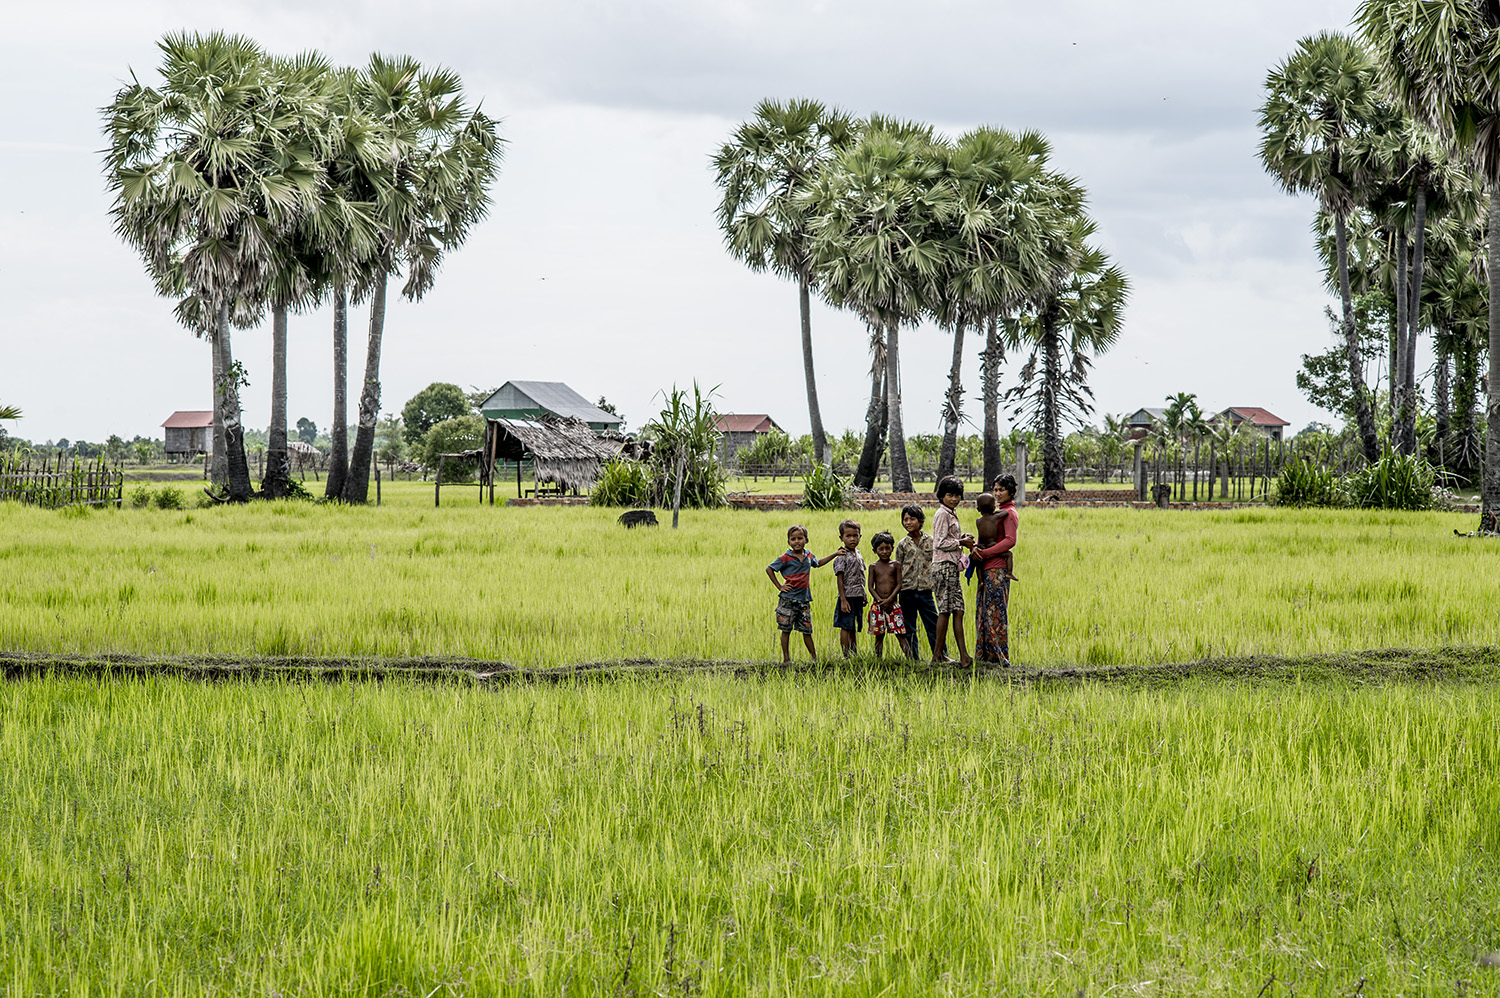 image of AARONTAIT COPYRIGHTED 2014 330 TRAVEL PHOTOGRAPHER ASIA REPORTAGE EDITORIAL STORY HUMANS LIFE EARTH TRAVELER EXPLORE CULTURE PEOPLE COUNTRY NATIONALITY DOCUMENTARY CAMBODIA RICE PADDY CHILDREN VILLAGE